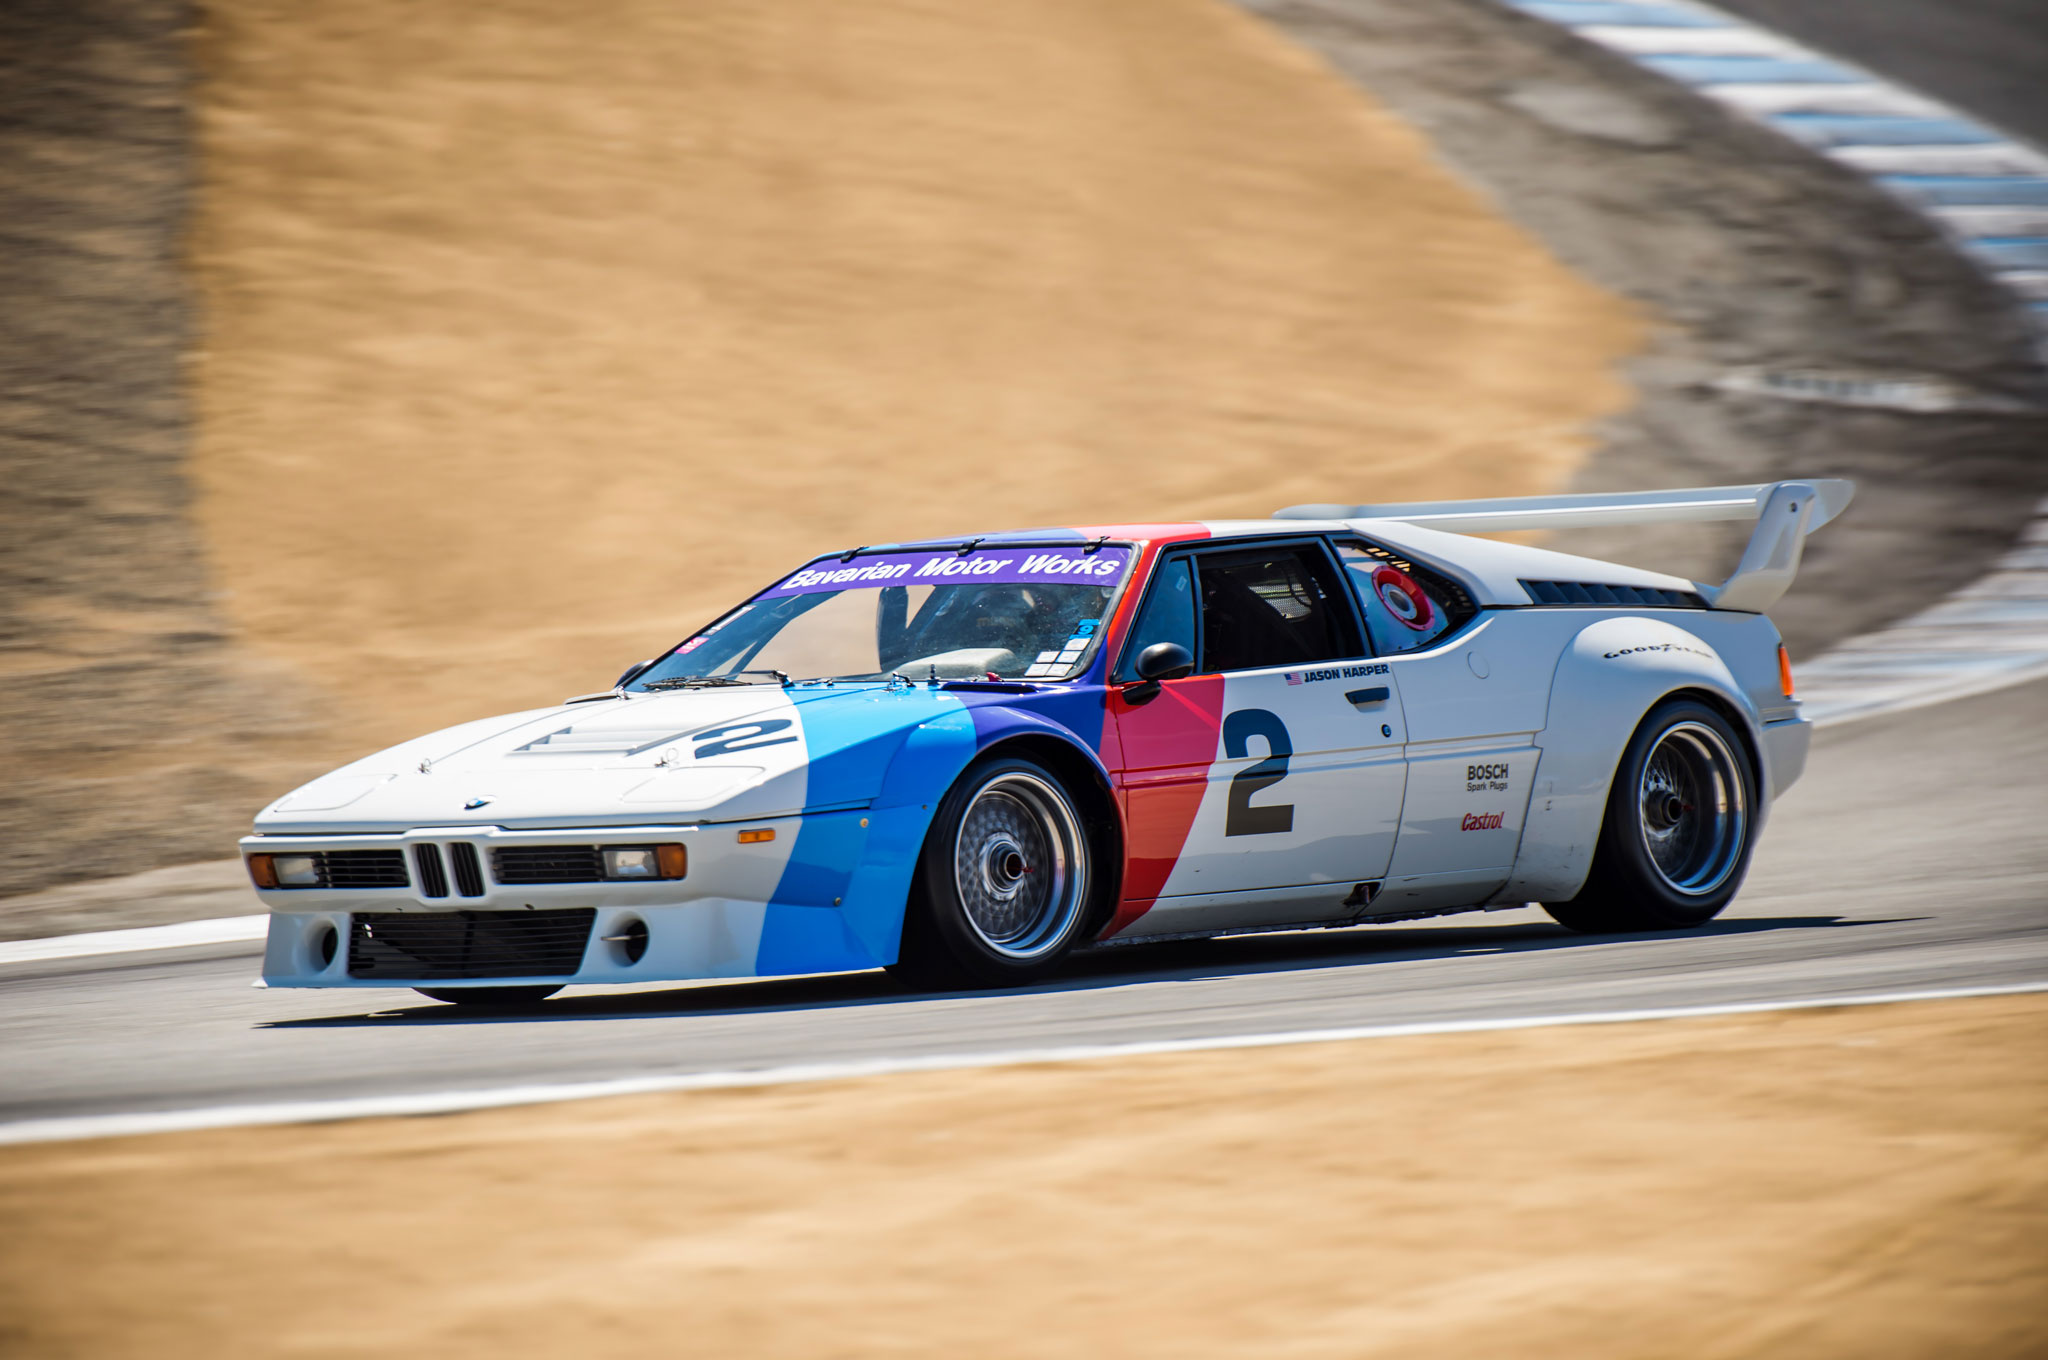 the one racing the mid engine bmw m1 supercar at mazda raceway. Black Bedroom Furniture Sets. Home Design Ideas